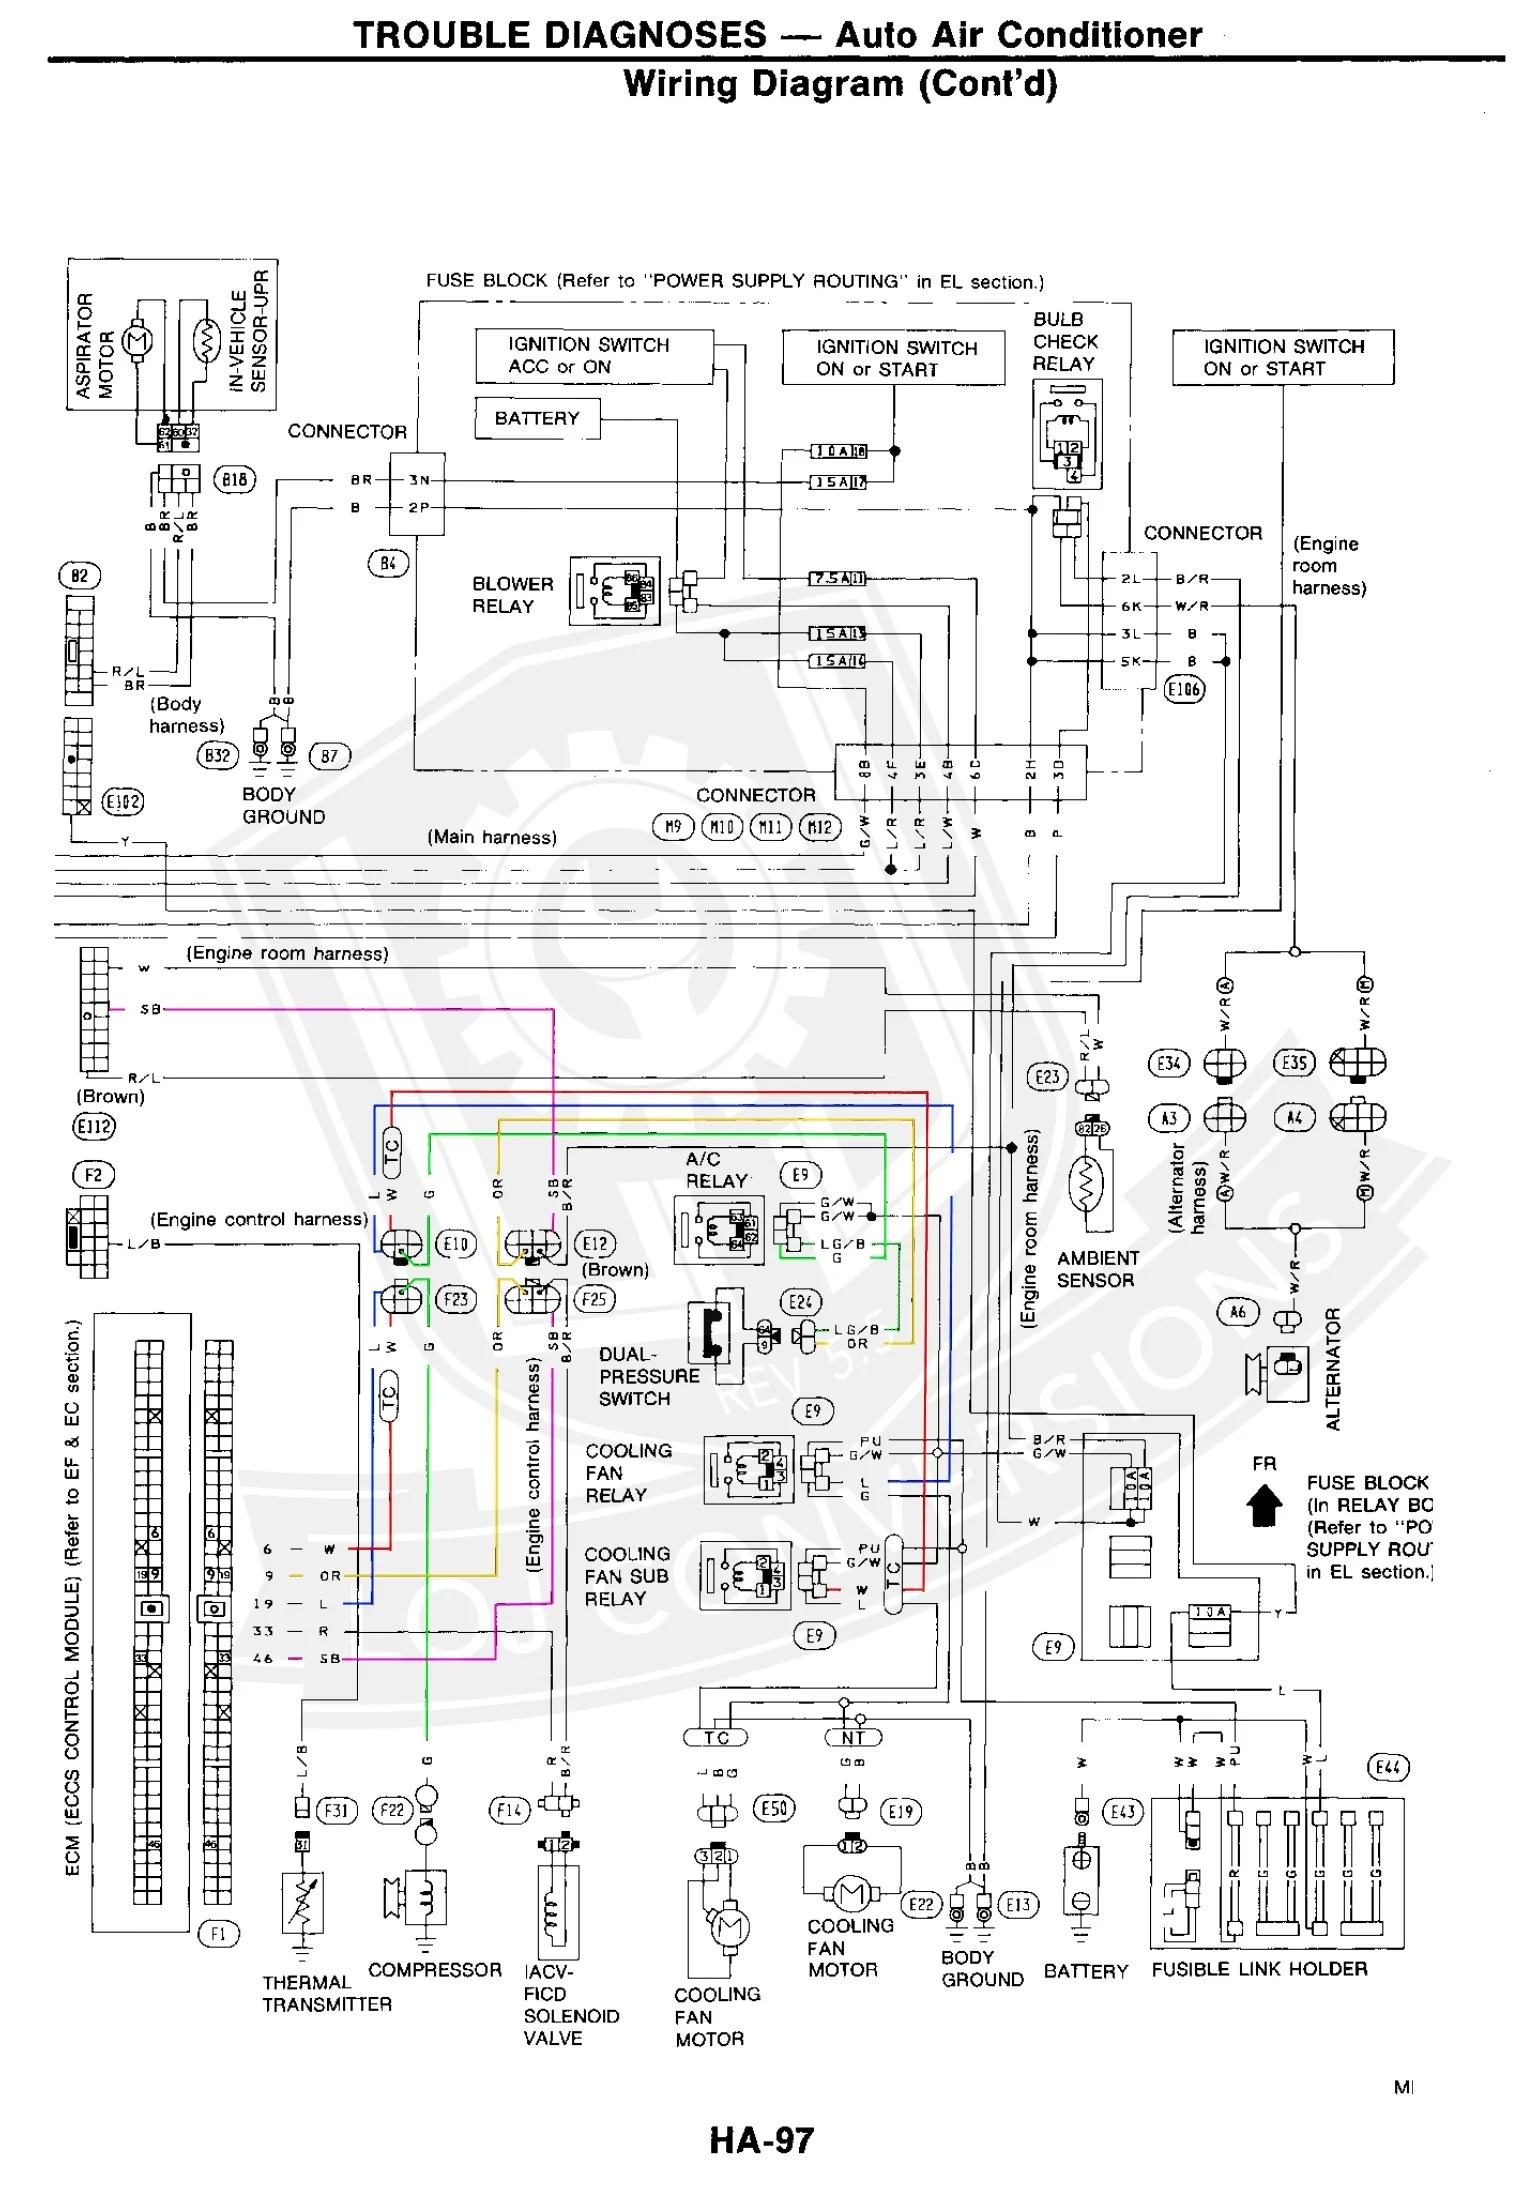 1990 nissan 300zx fuse panel diagram wiring schematic wiring 1990 nissan 300zx fuse panel diagram [ 1515 x 2194 Pixel ]